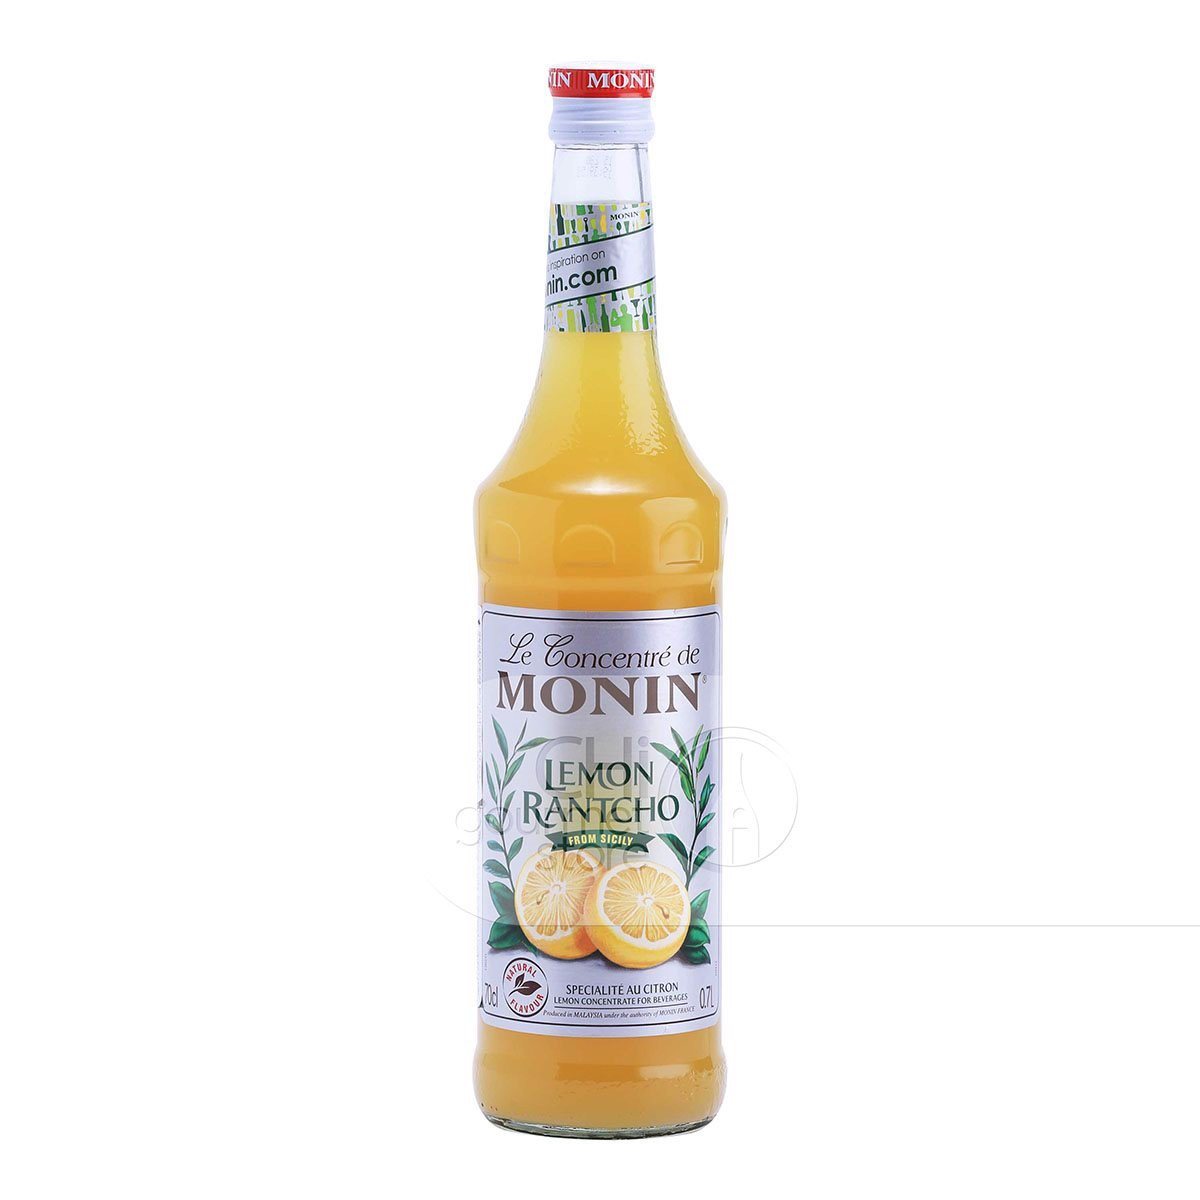 Syrup Rantcho Lemon 700ml - Monin